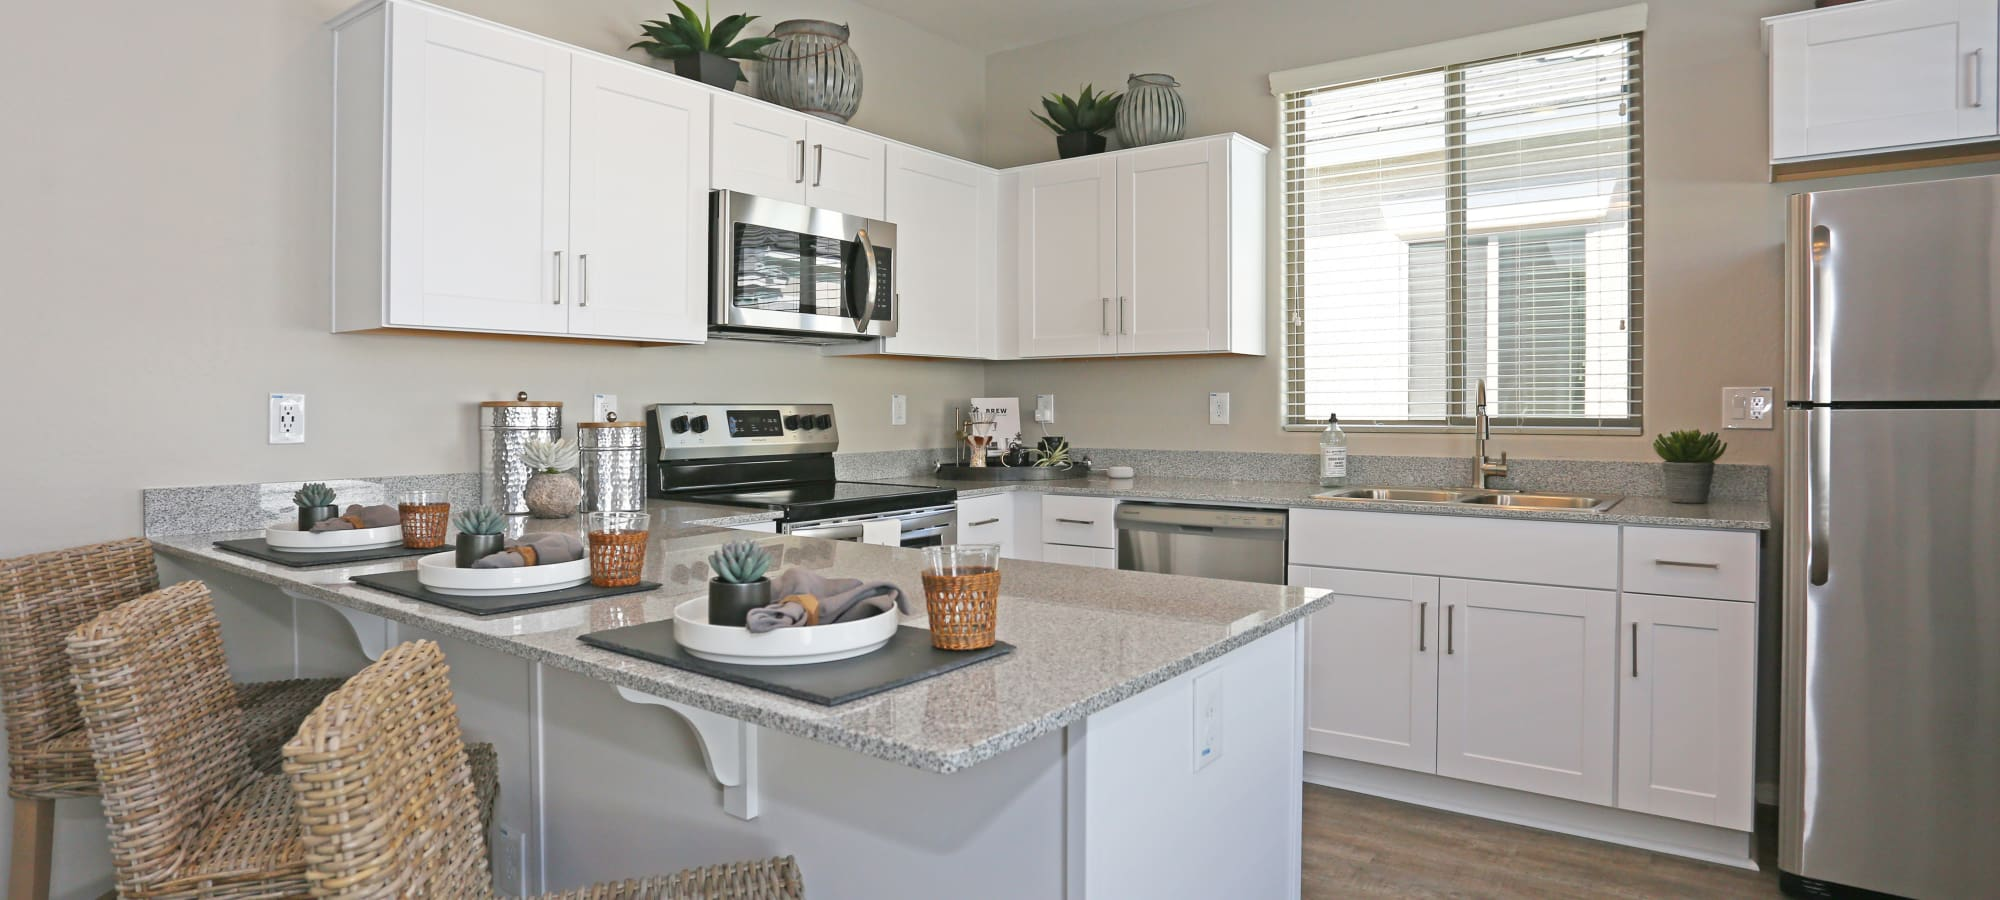 Granite countertops in model home's kitchen at Christopher Todd Communities On Camelback in Litchfield Park, Arizona